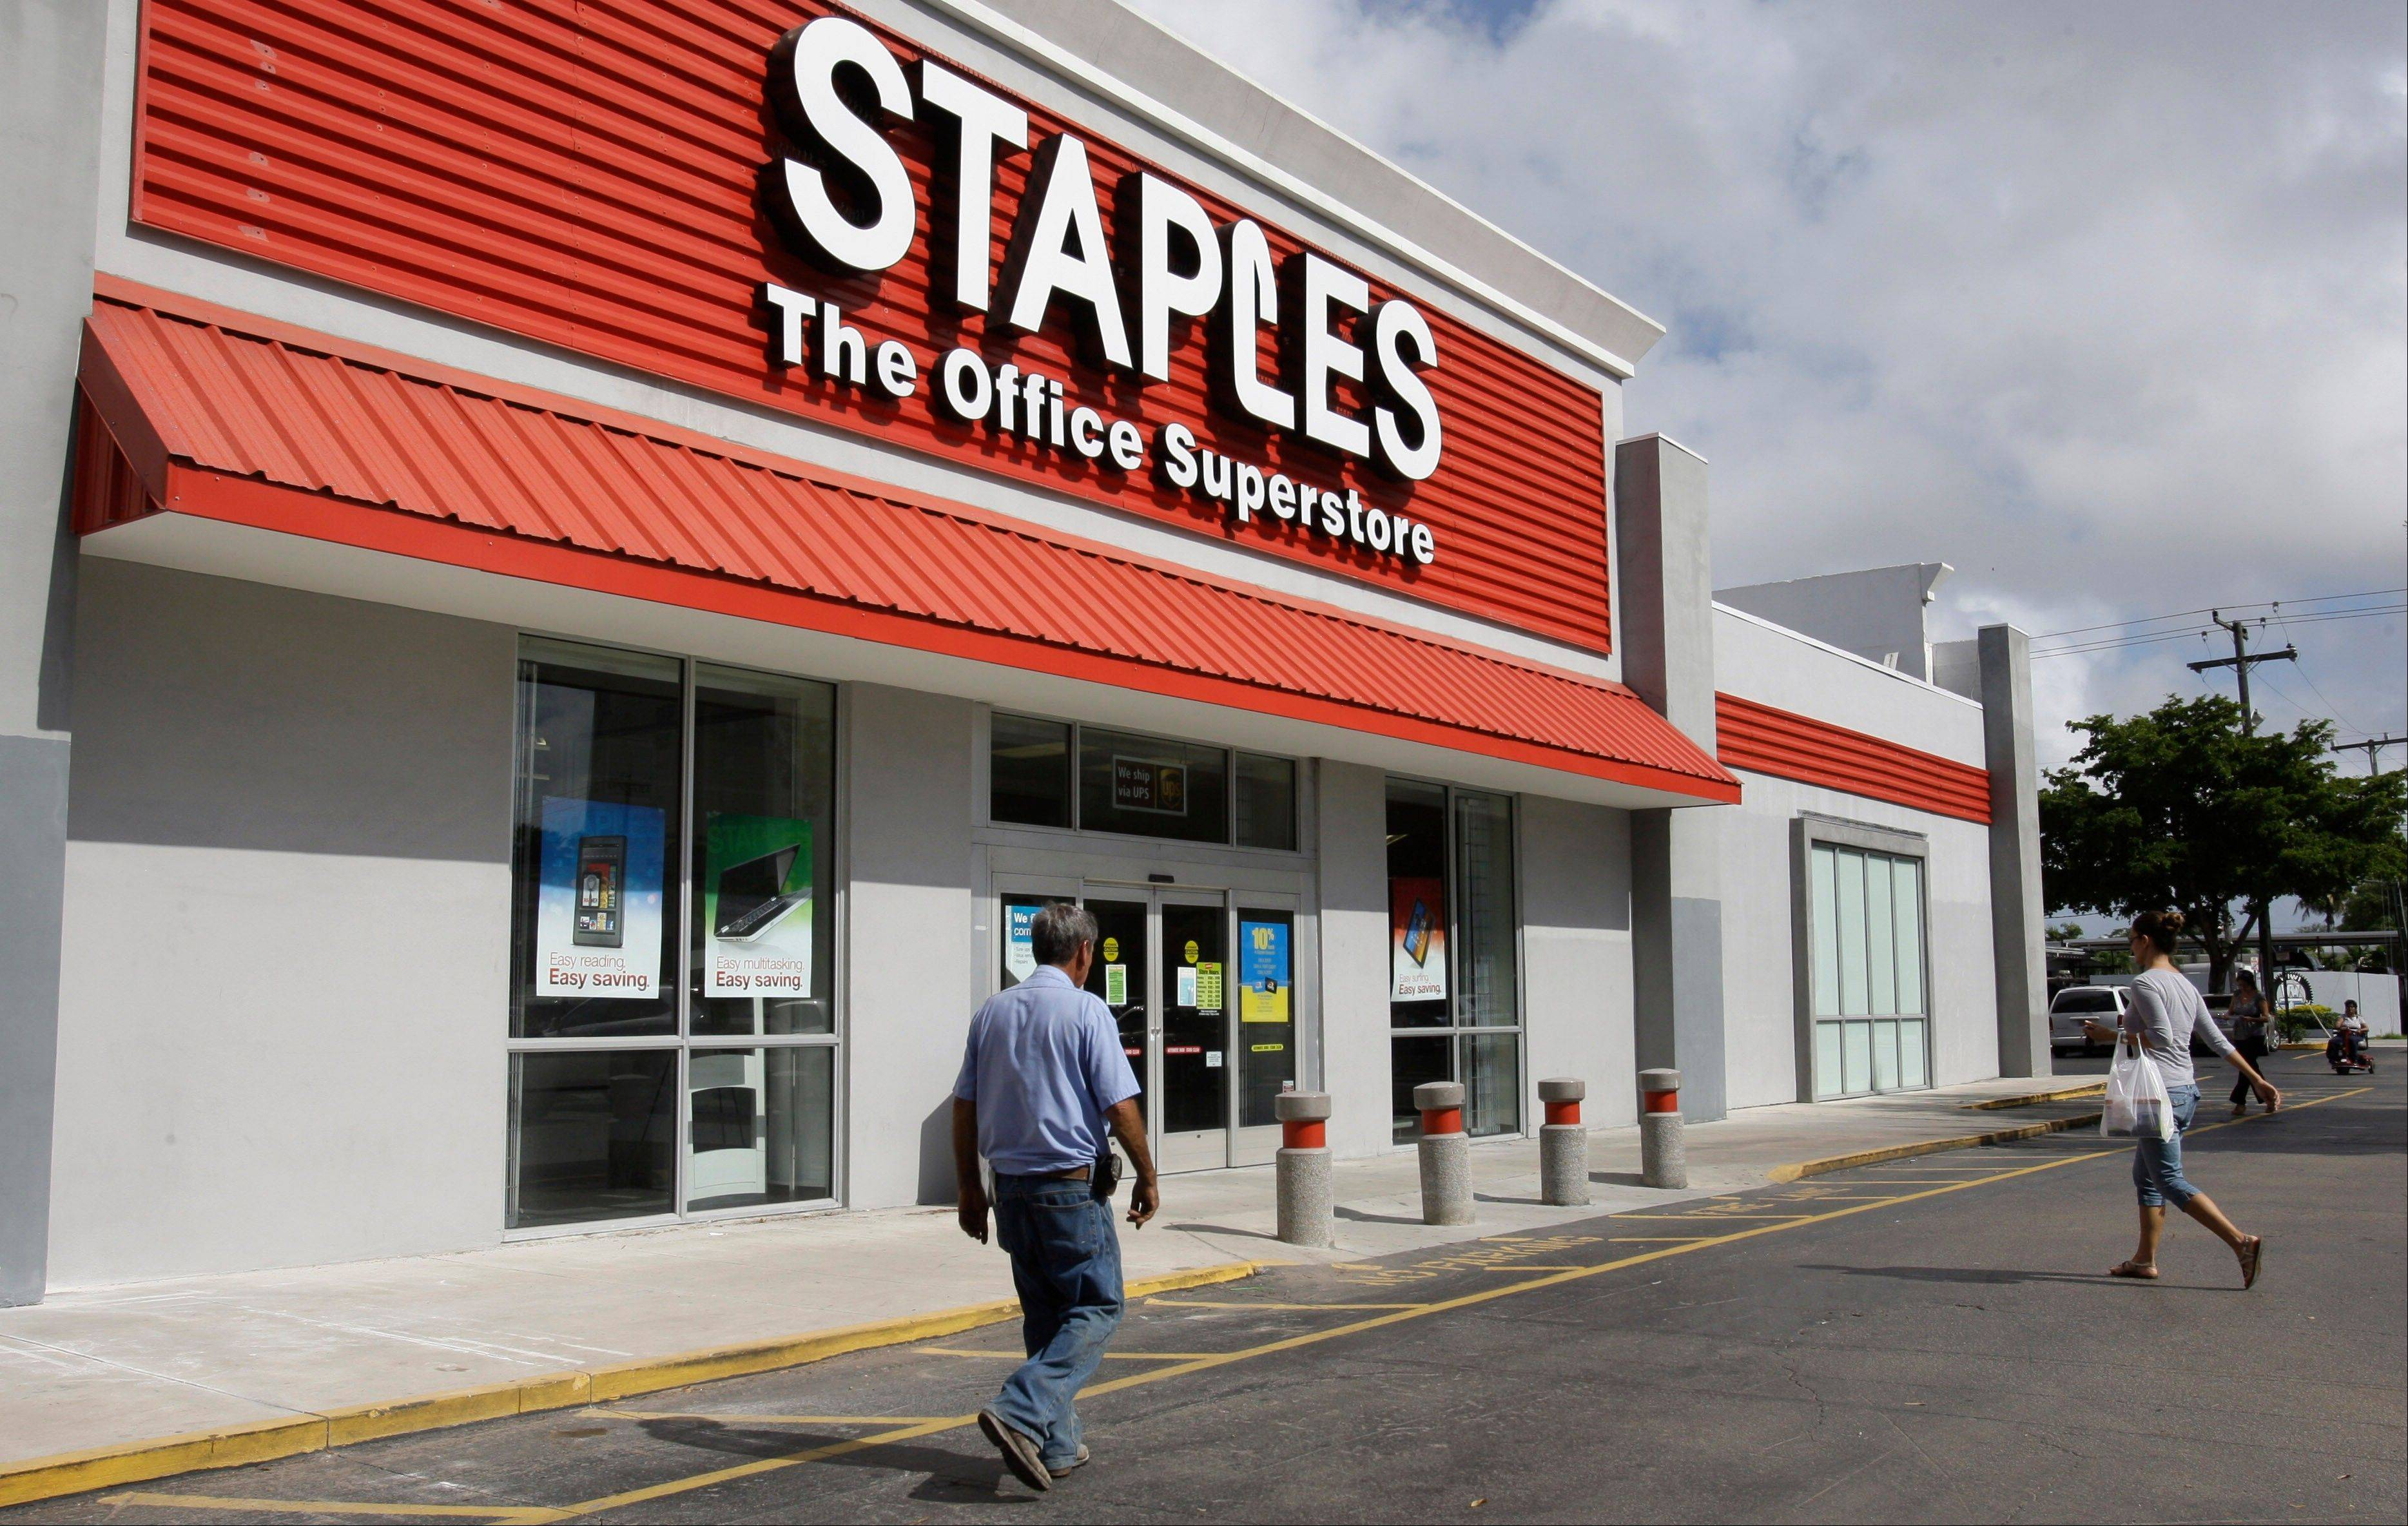 Staples� fiscal fourth-quarter net income dropped 72 percent, dragged down by charges related to store closings and other matters. Its adjusted results topped Wall Street�s view, but its forecast for this year was below analysts� estimates.